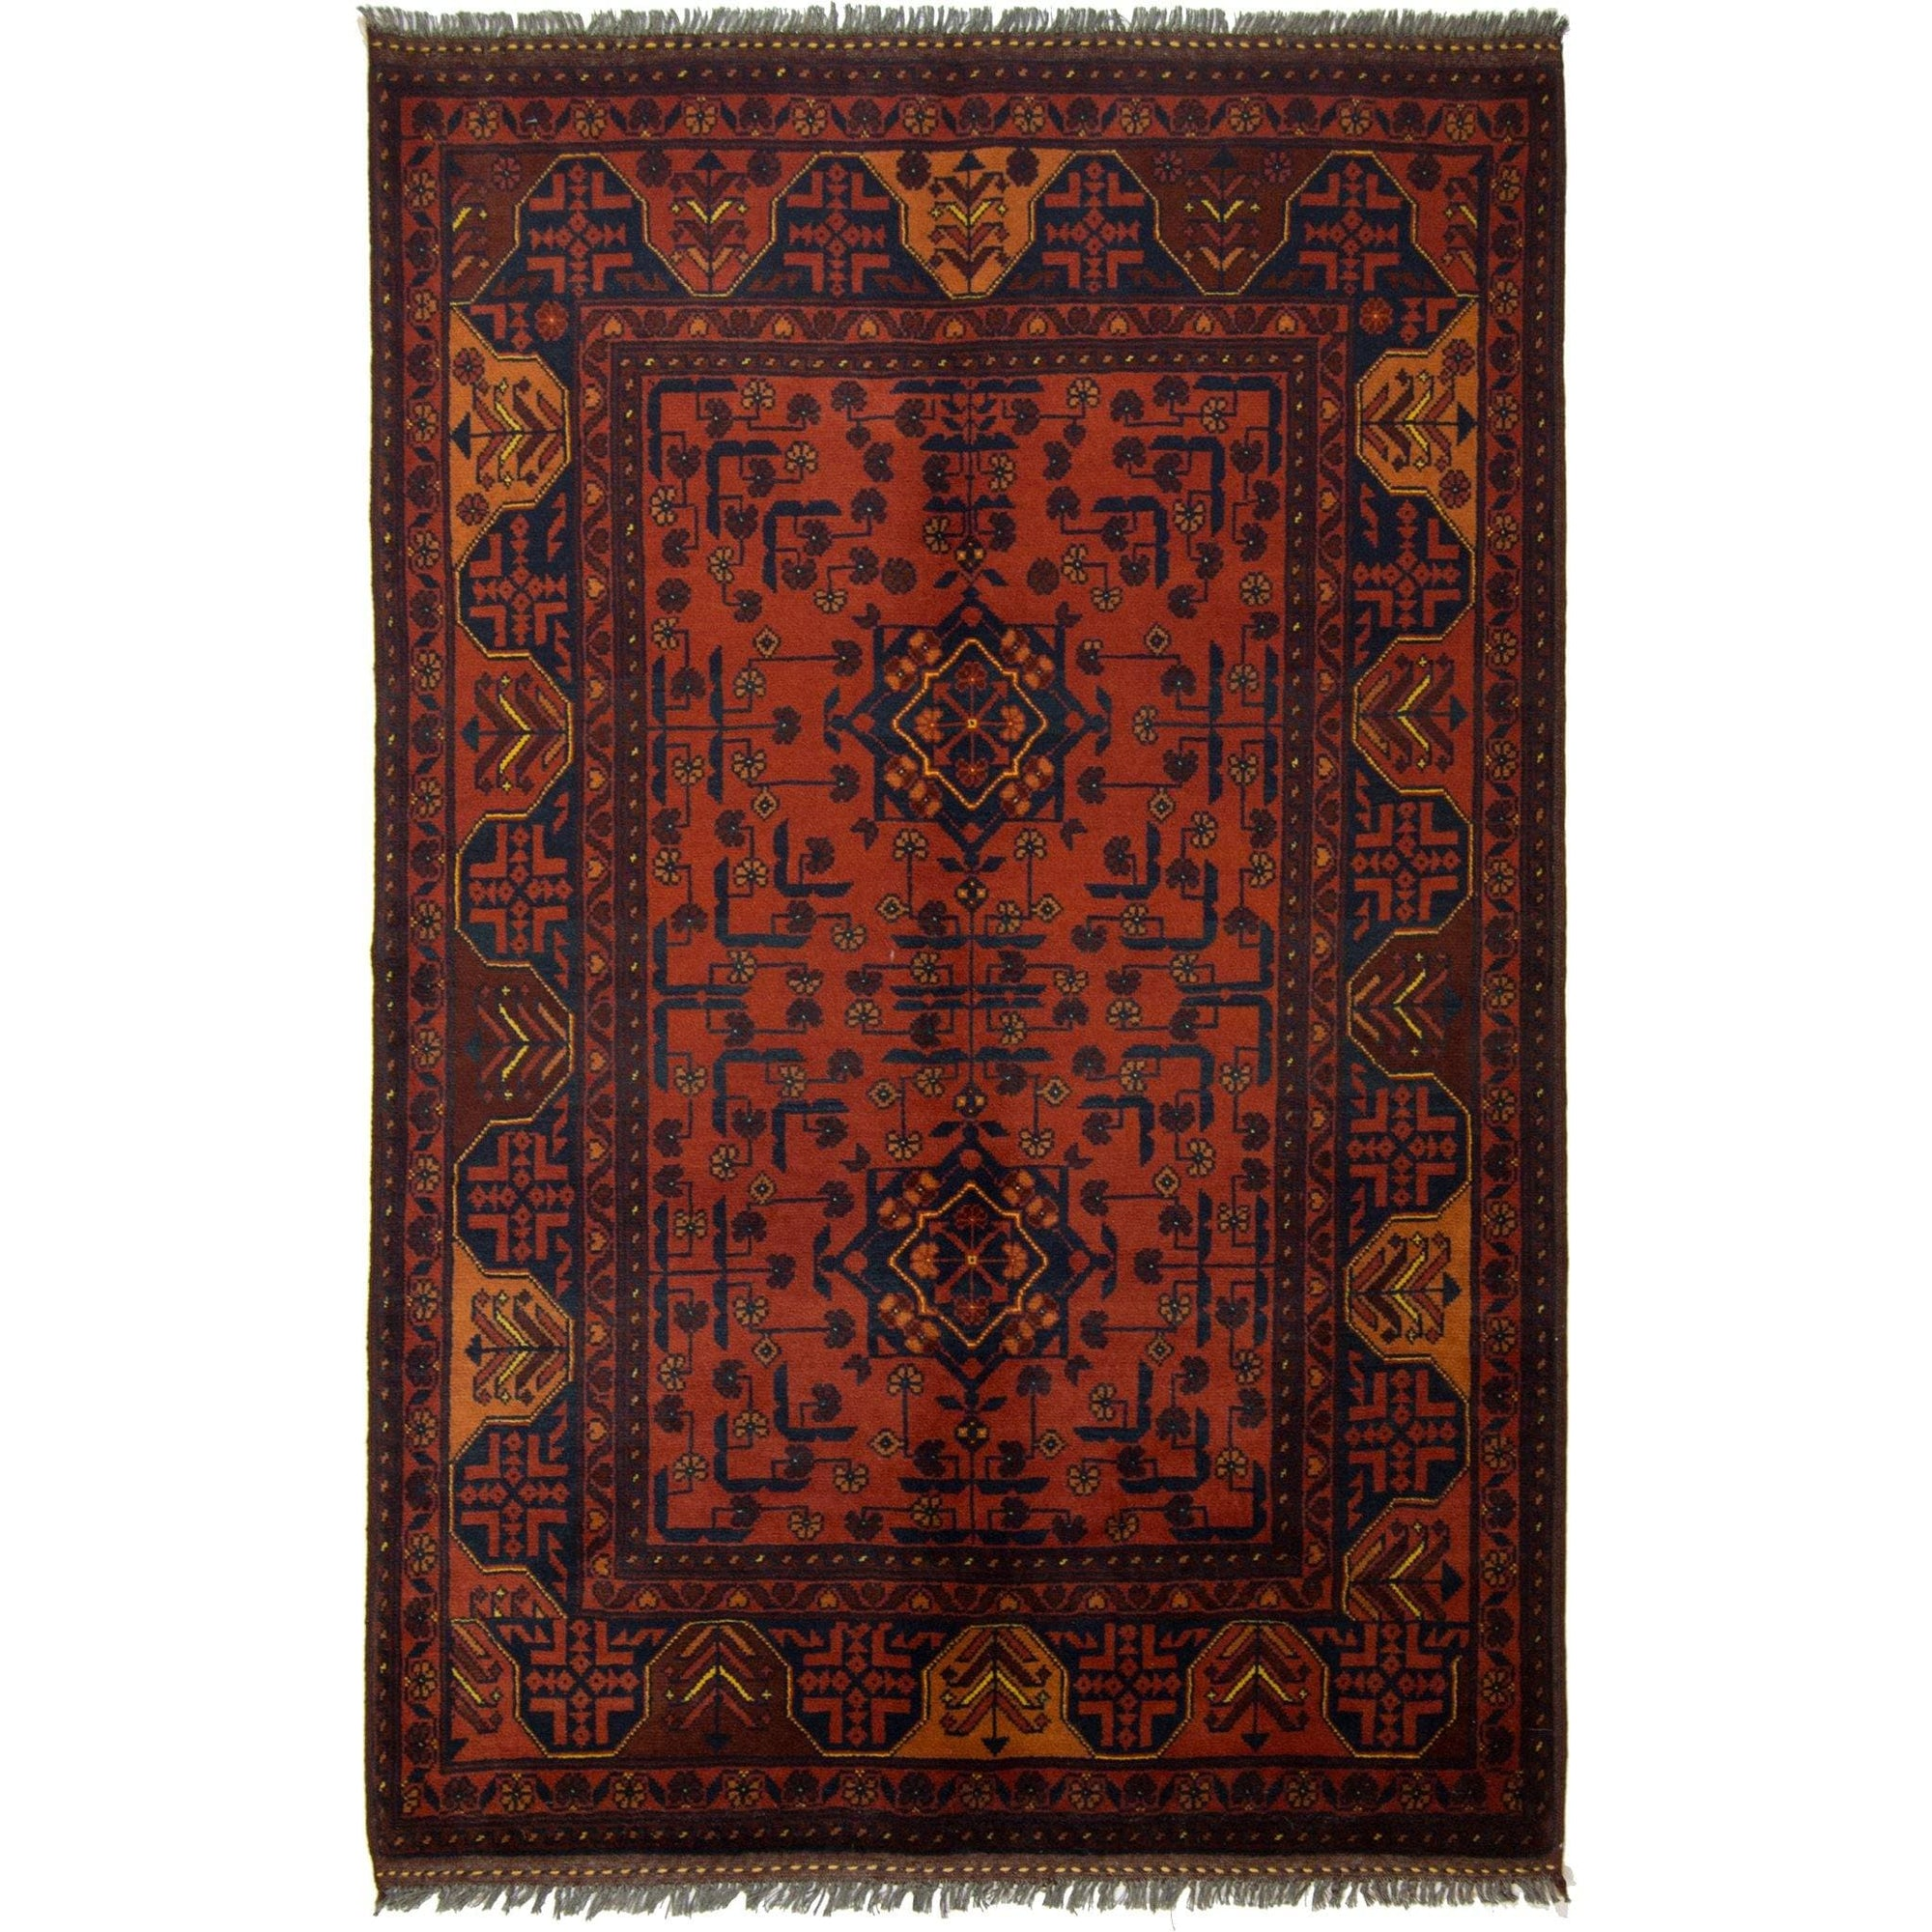 Fine Hand-knotted Wool Afghan Turkmen Rug 101cm x 153cm Persian-Rug | House-of-Haghi | NewMarket | Auckland | NZ | Handmade Persian Rugs | Hand Knotted Persian Rugs